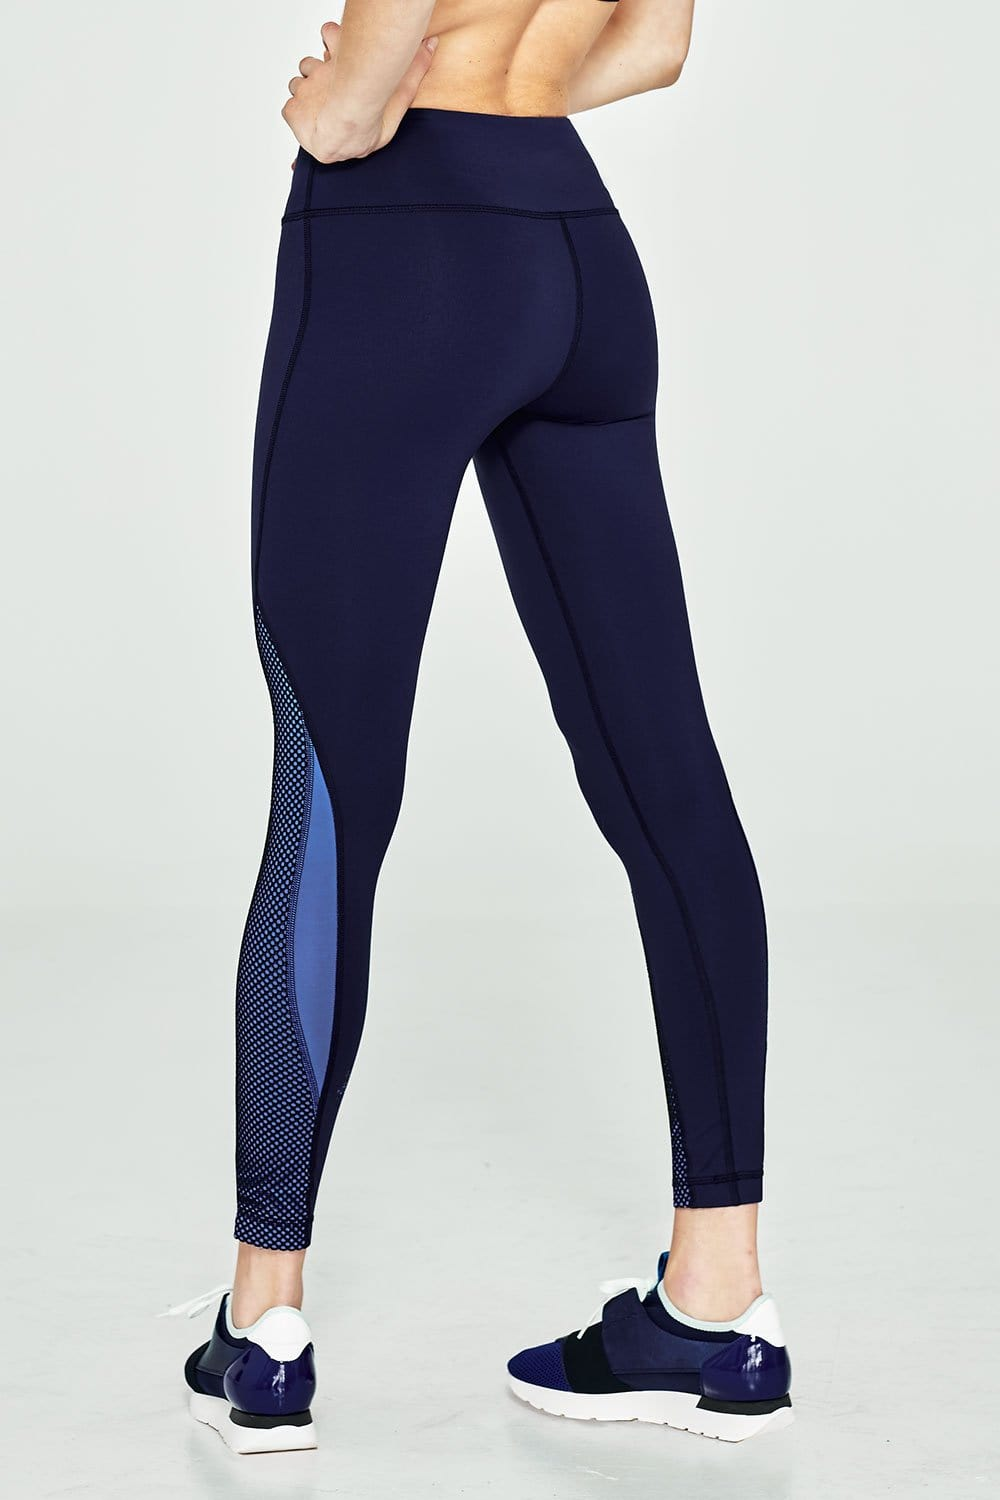 Arcam High Waist Legging - Tonic UAE Arcam High Waist Legging - Athletic Wear Tonic UAE - tonic athletic apparel Tonic UAE - tonic UAE